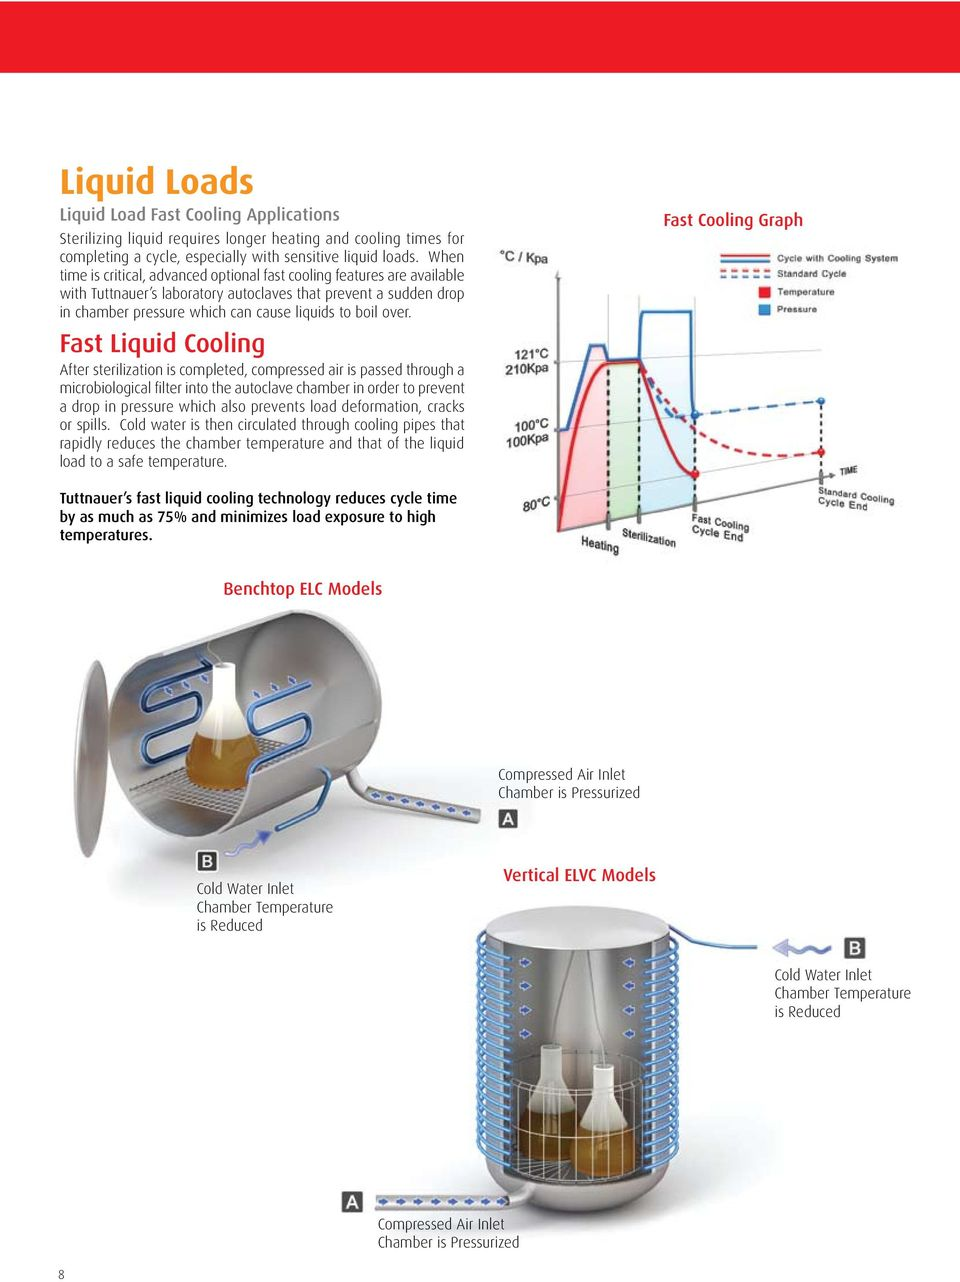 Fast Liquid Cooling After sterilization is completed, compressed air is passed through a microbiological filter into the autoclave chamber in order to prevent a drop in pressure which also prevents